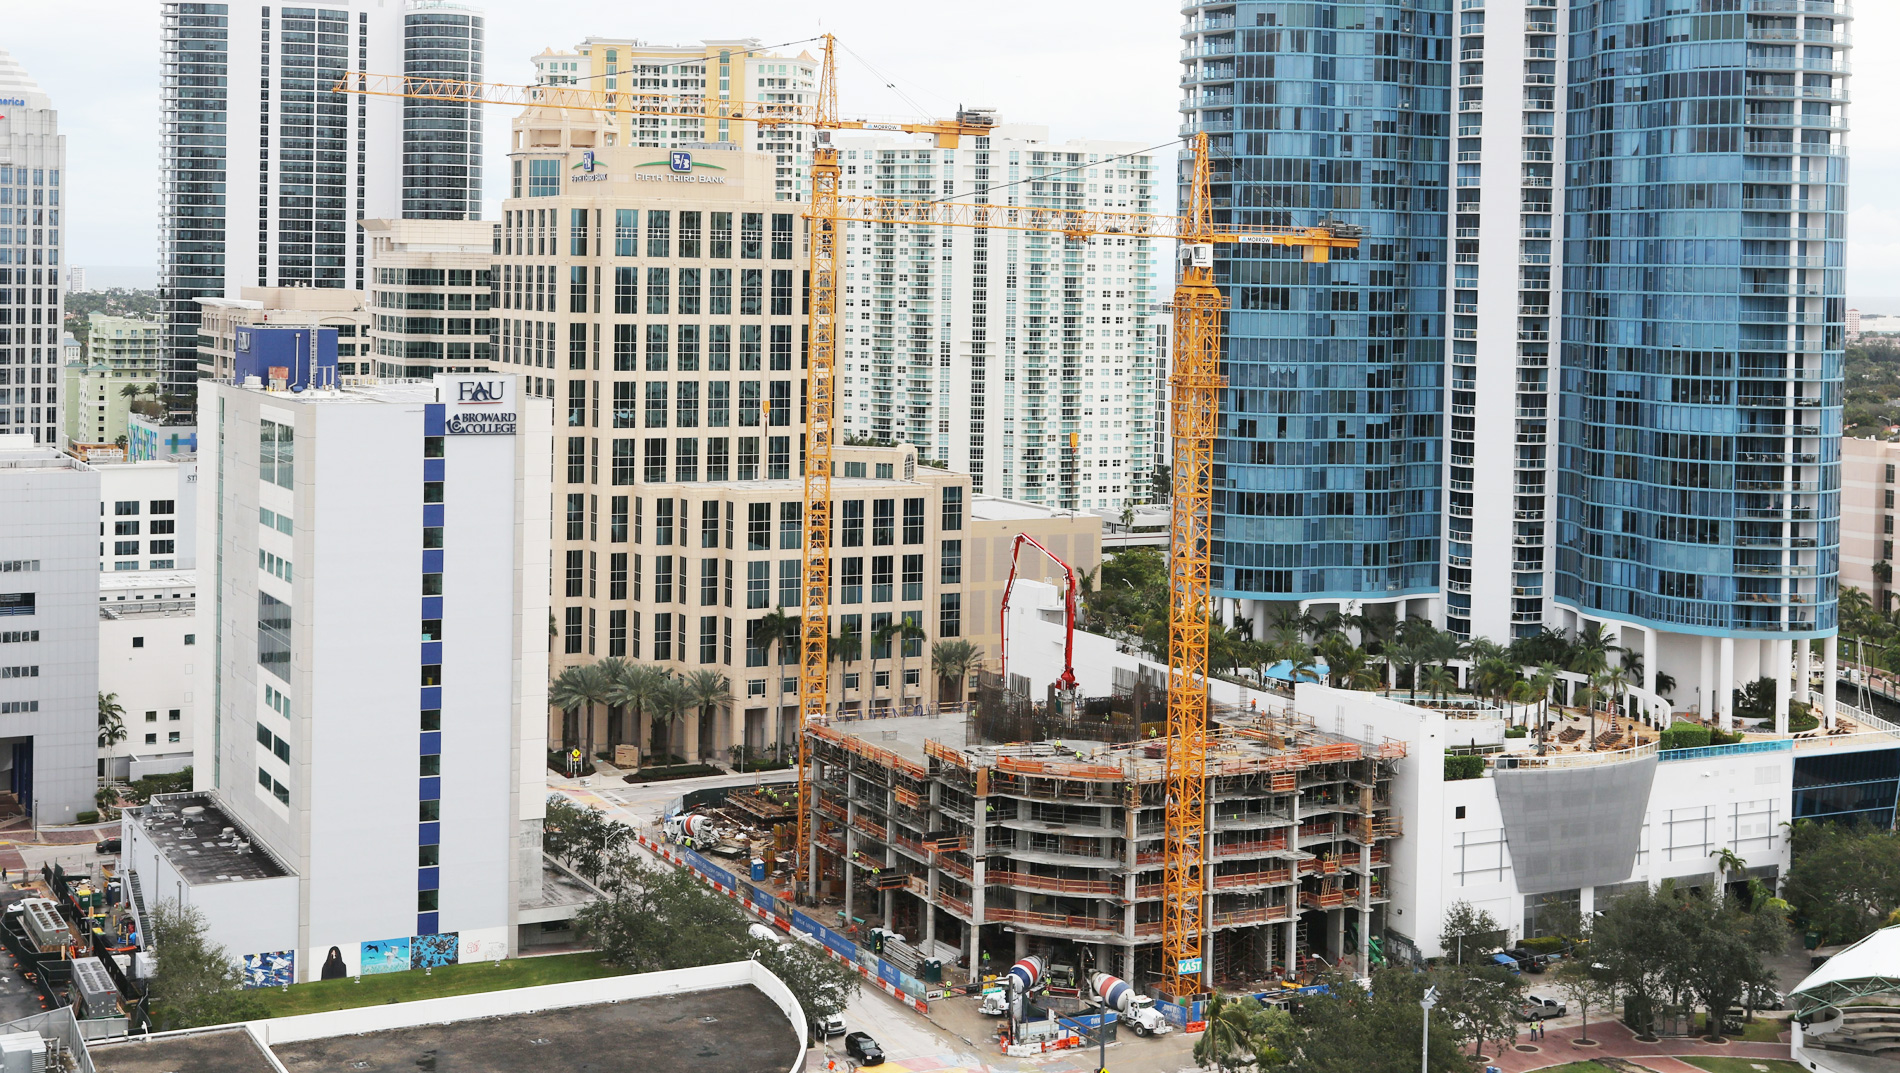 January Construction Update 100 Las Olas